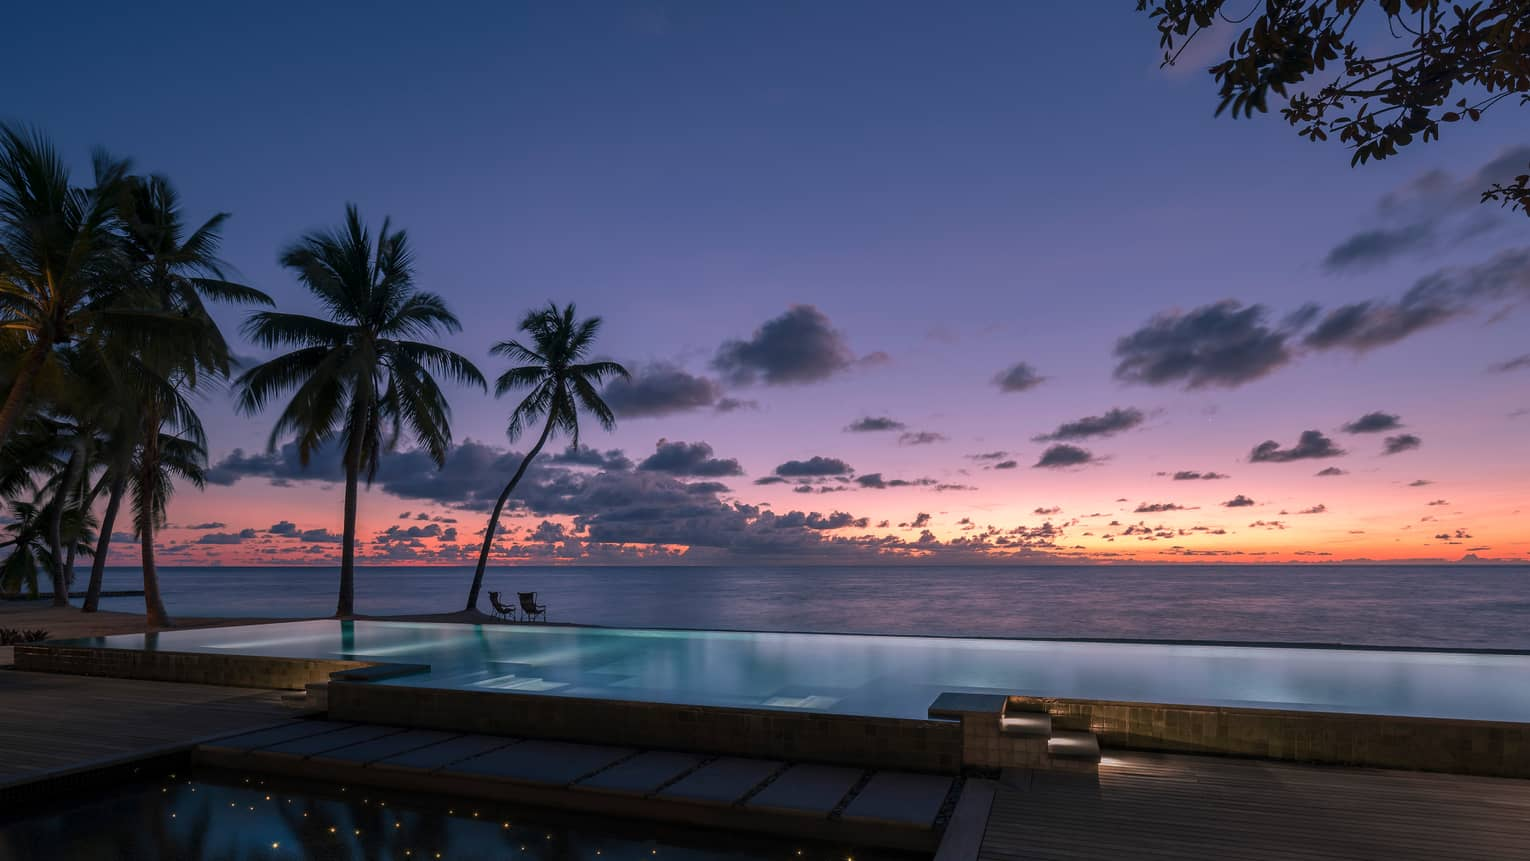 Beach pool with palm trees and water views at sunset